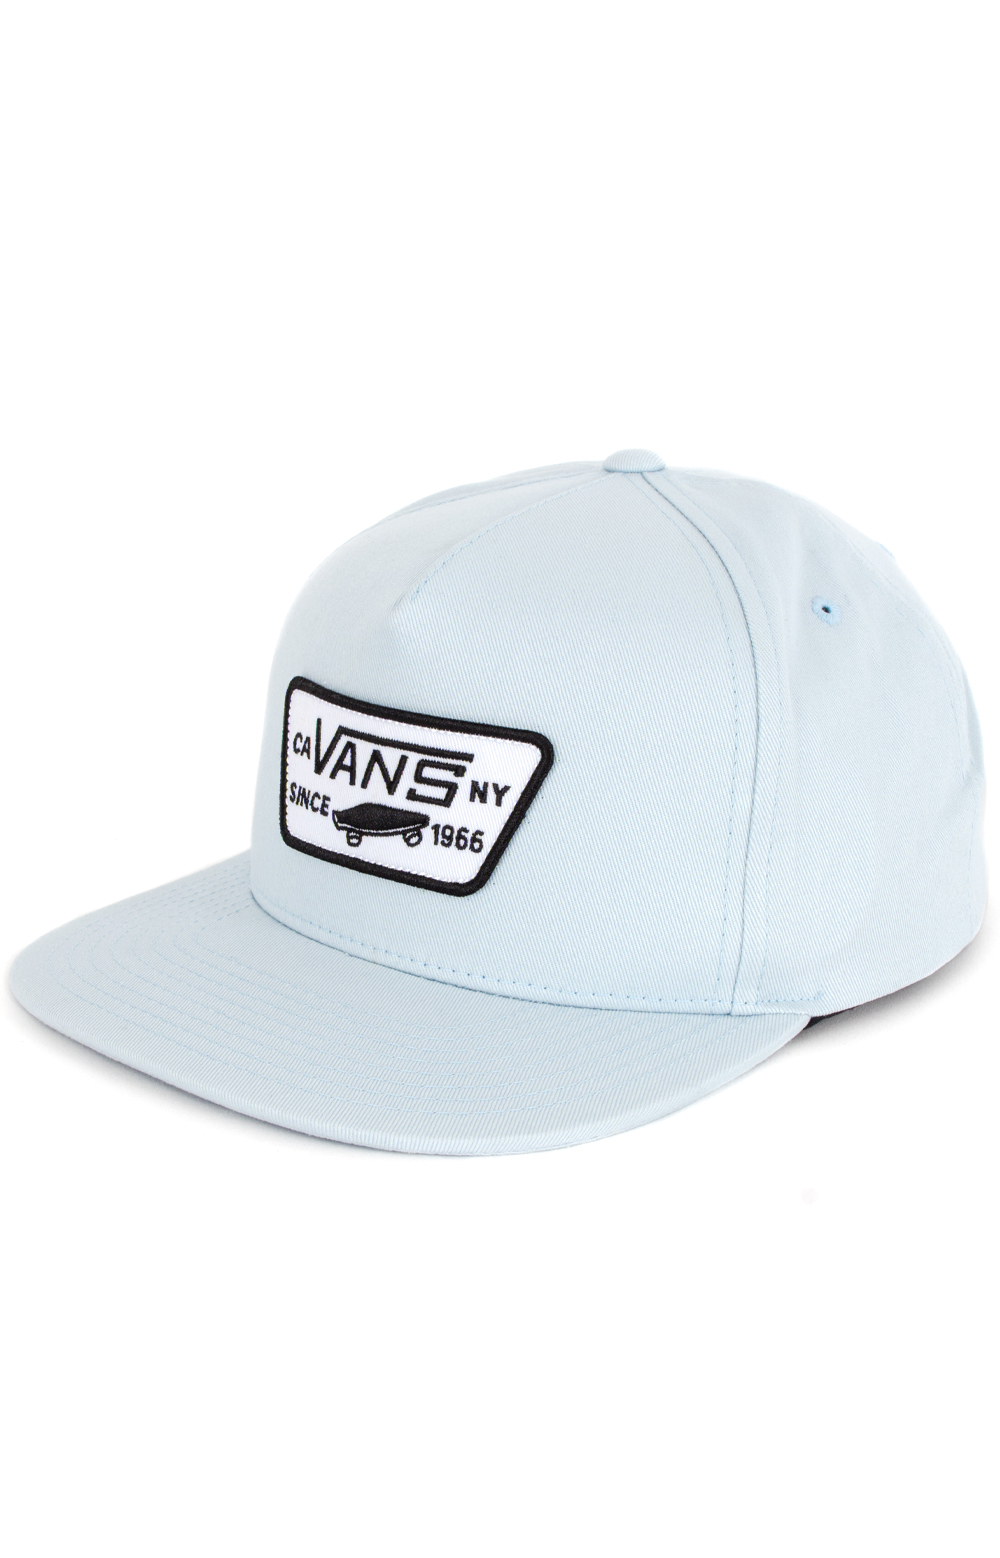 Full Patch Snap-Back Hat - Baby Blue